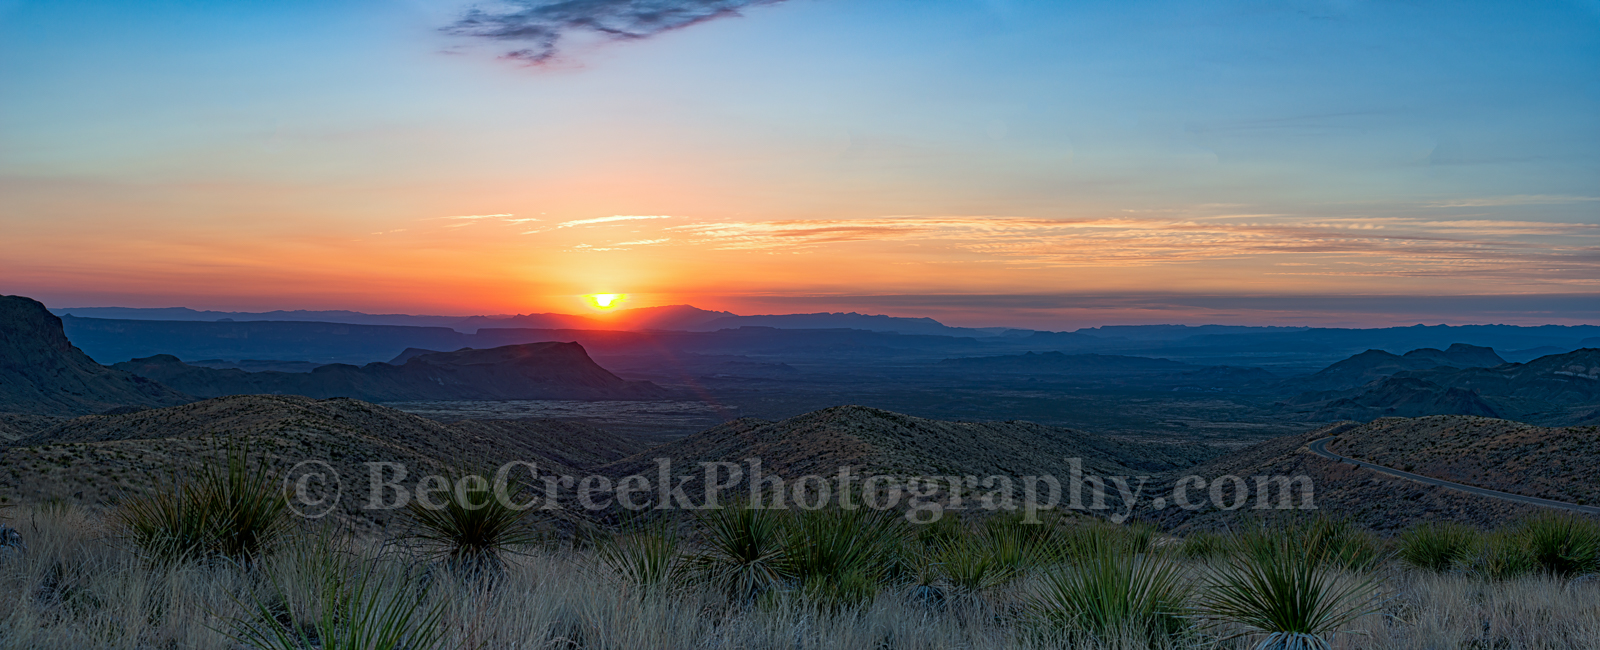 Big Bend National Park, Chihuahuan Desert, Dead Horse mountains, Leisure, Sierra Ponce, Sotol Vista Overlook, colorful, landscape, lifestyle, pano, panorama, sky, sotol, sunset, texas, tourism, travel, photo